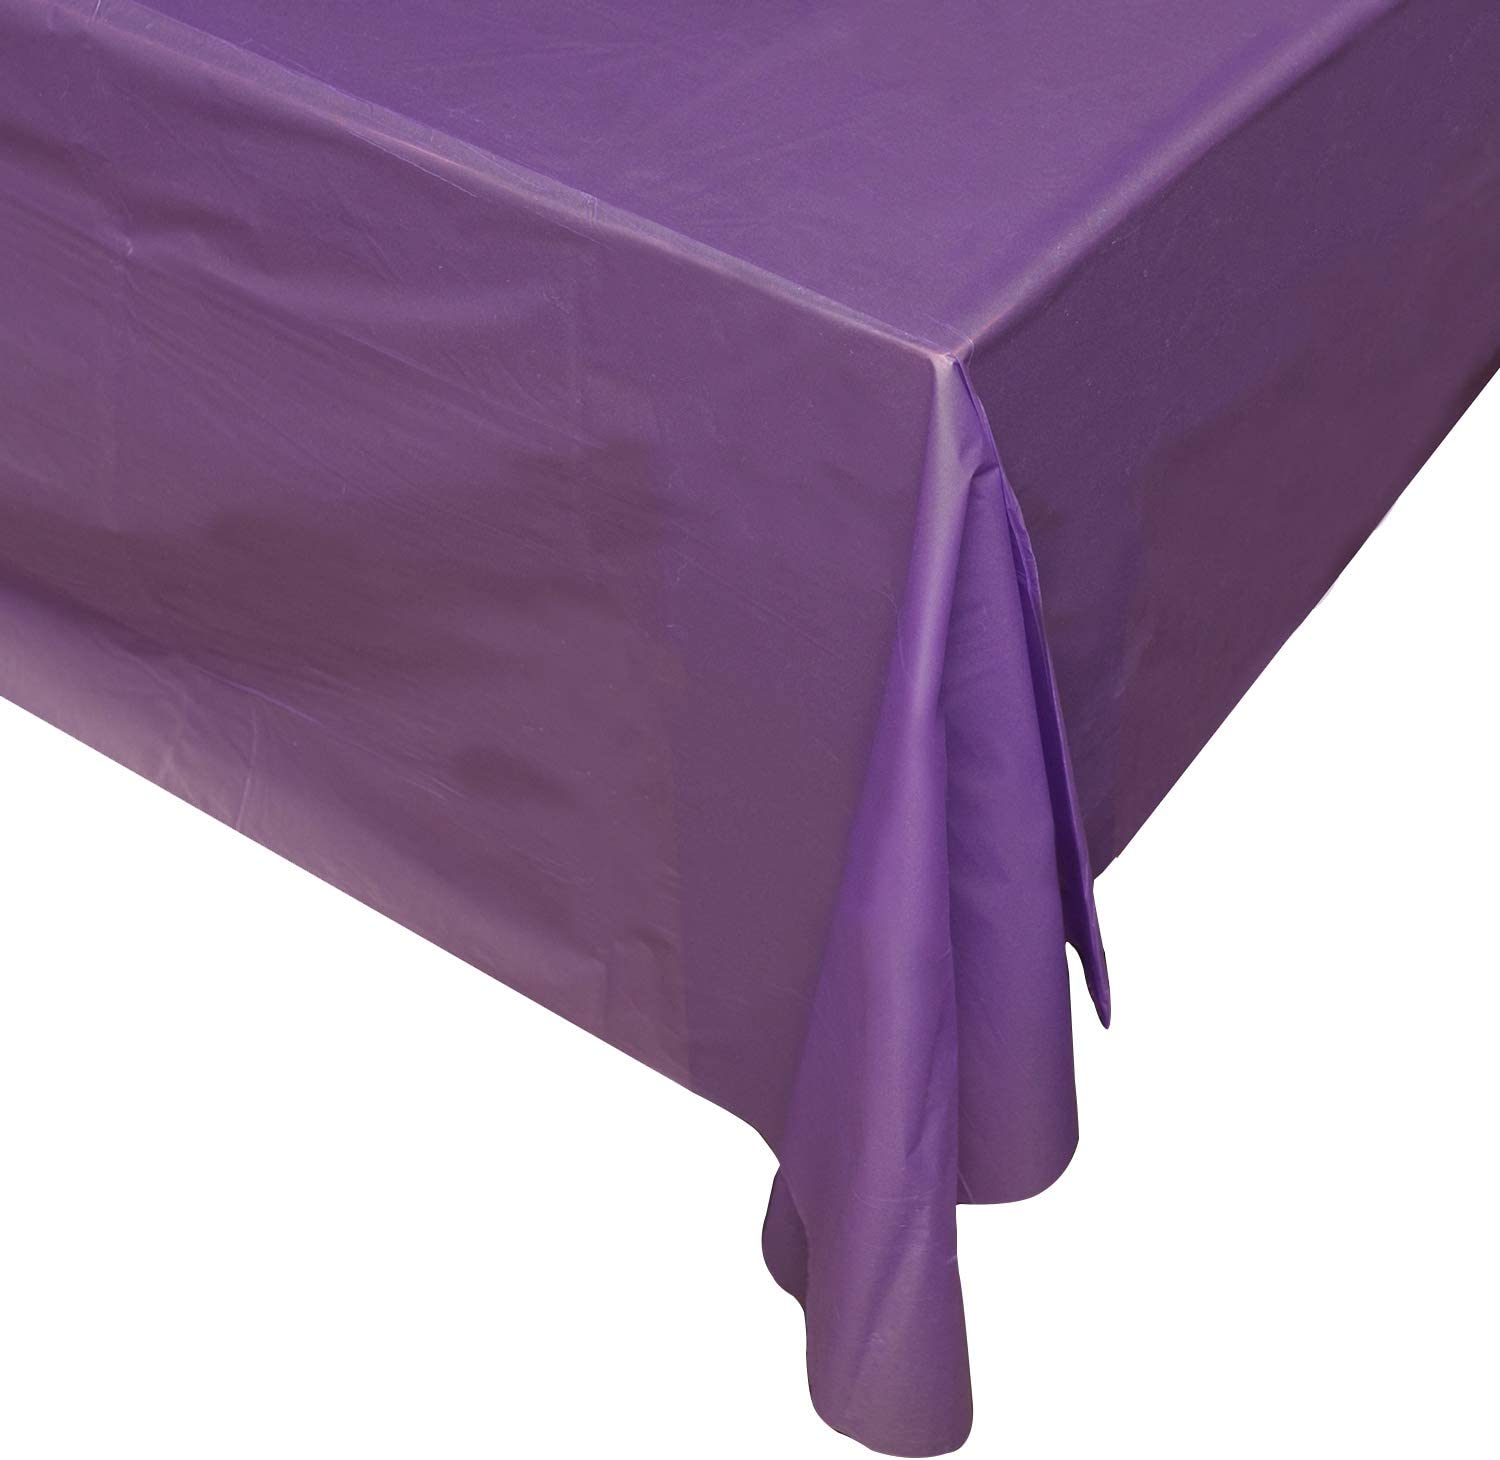 Purple 6 Pack Premium Disposable Plastic Tablecloth 54 inch. X 108 inch. Rectangle Table Cover by ARW1 LTD. tablecloths Rectangle Tables Plastic Disposable Rectangle Tablecloth Plastic